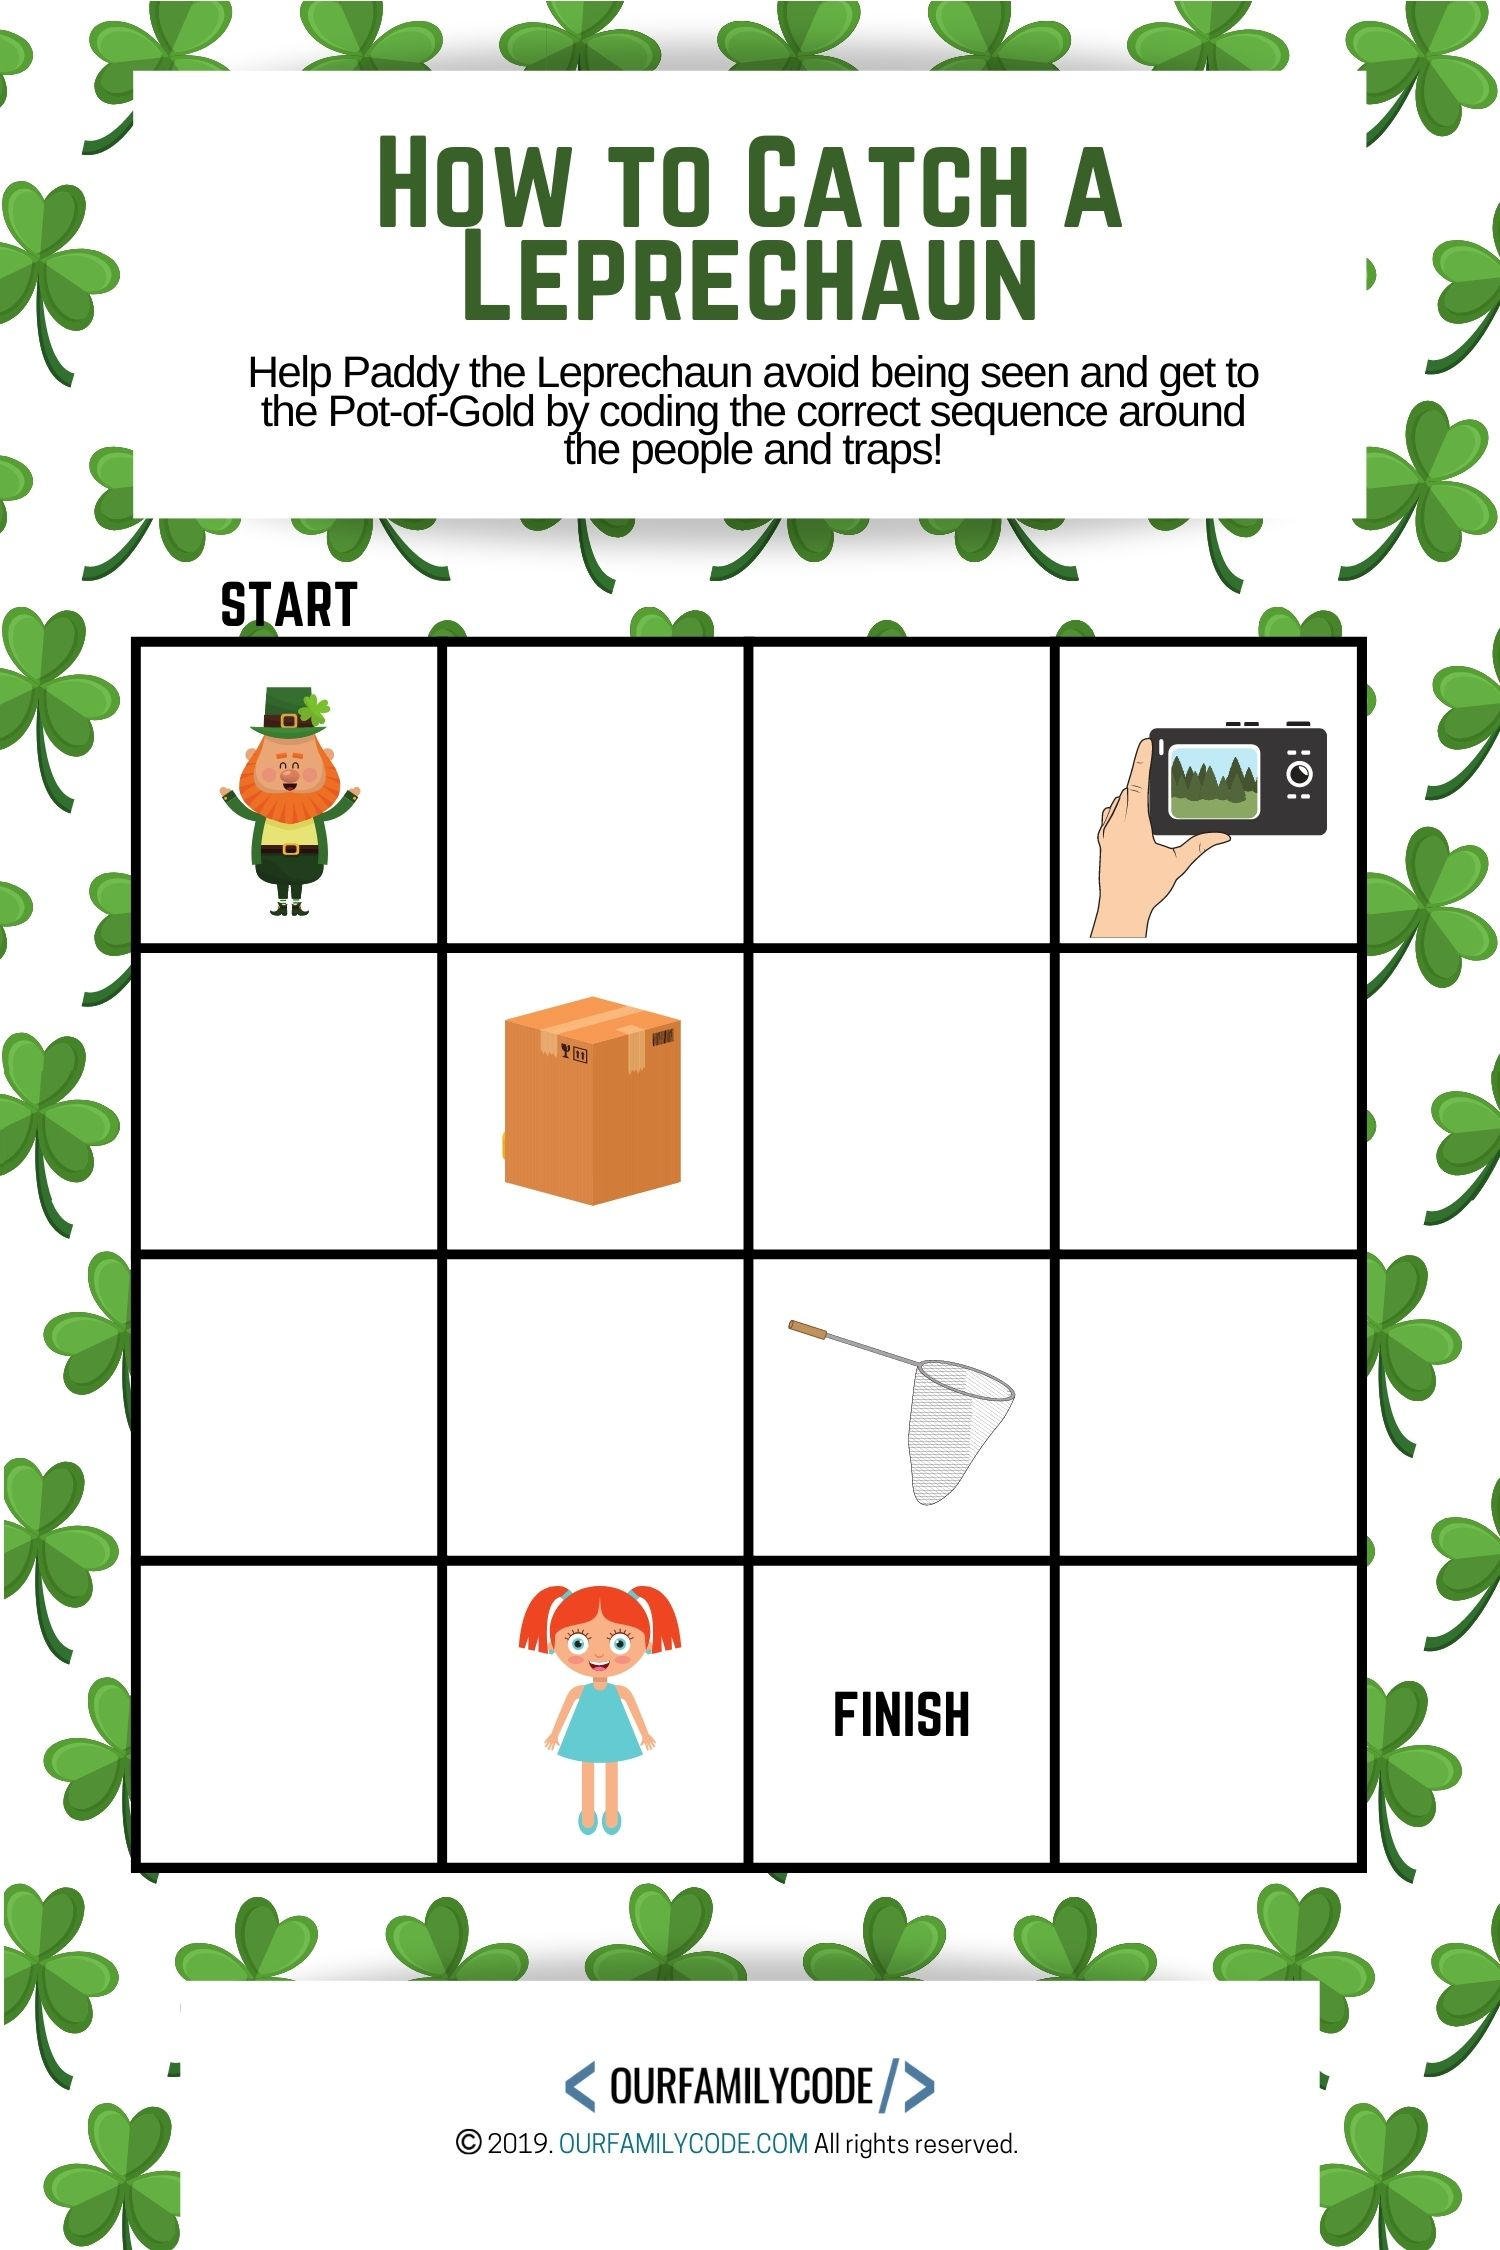 How To Catch A Leprechaun Sequence Coding Activity